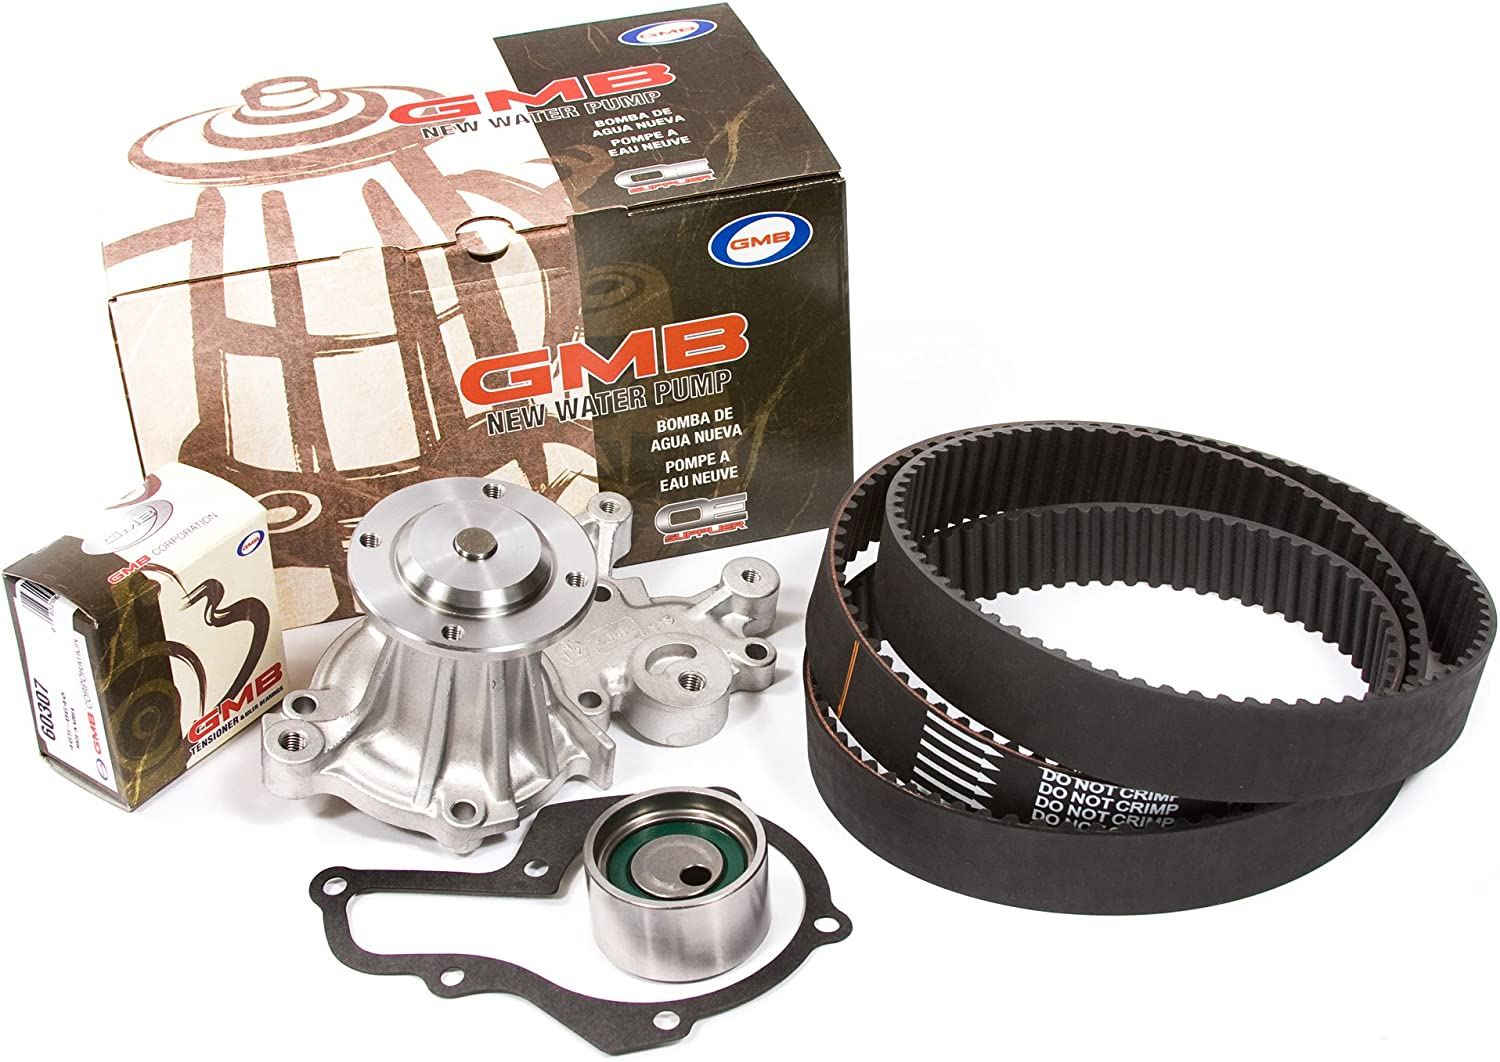 1.3 SOHC 16V Timing Belt Kit GMB Water Pump Fits 95-97 Geo Suzuki 1.3 SOHC 8V G13K